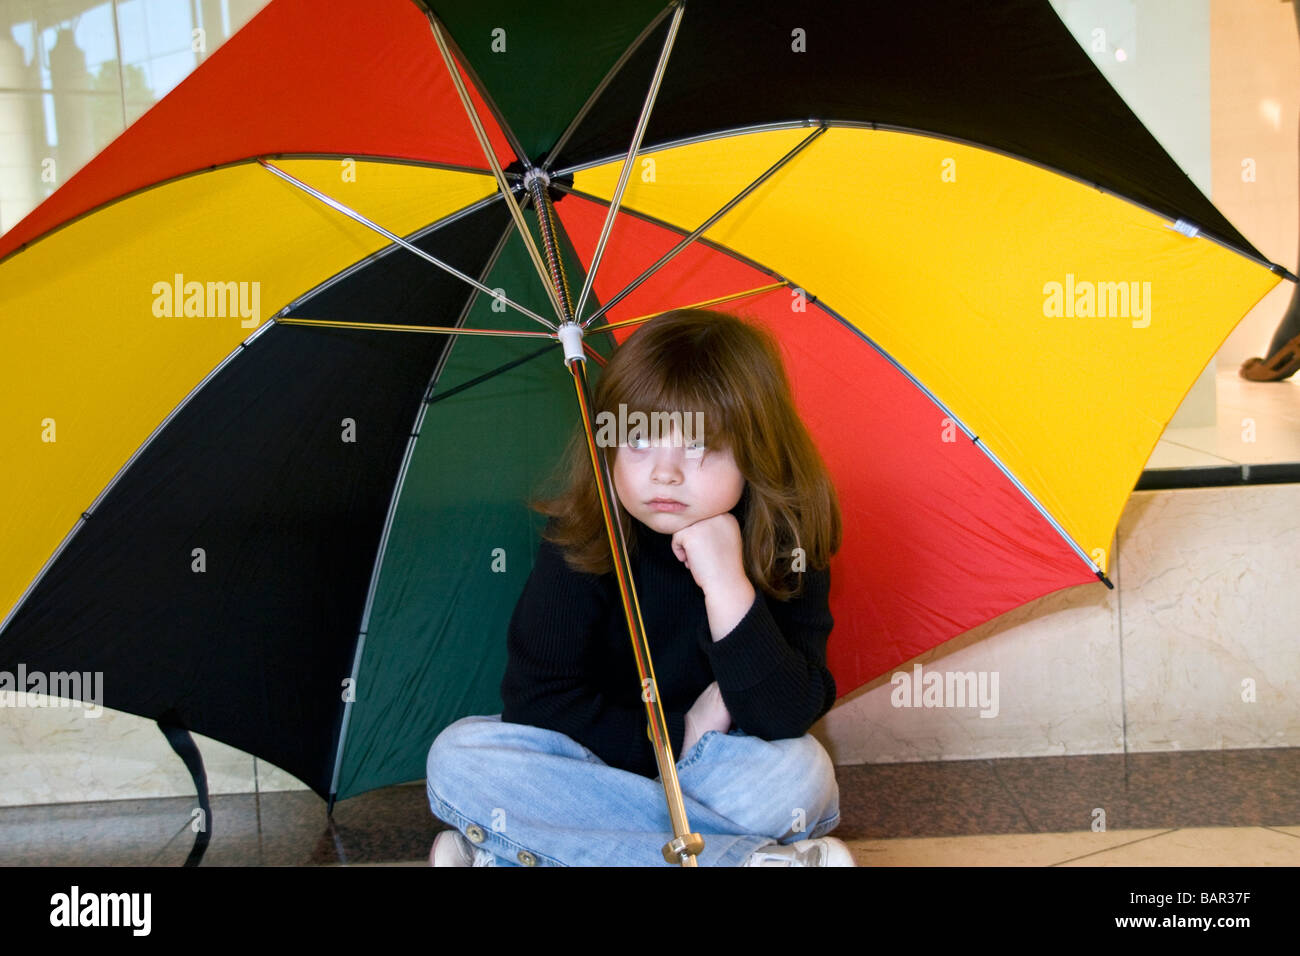 Small girl bored sitting on the ground under a large umbrella inside the Overgate shopping mall in Dundee UK - Stock Image